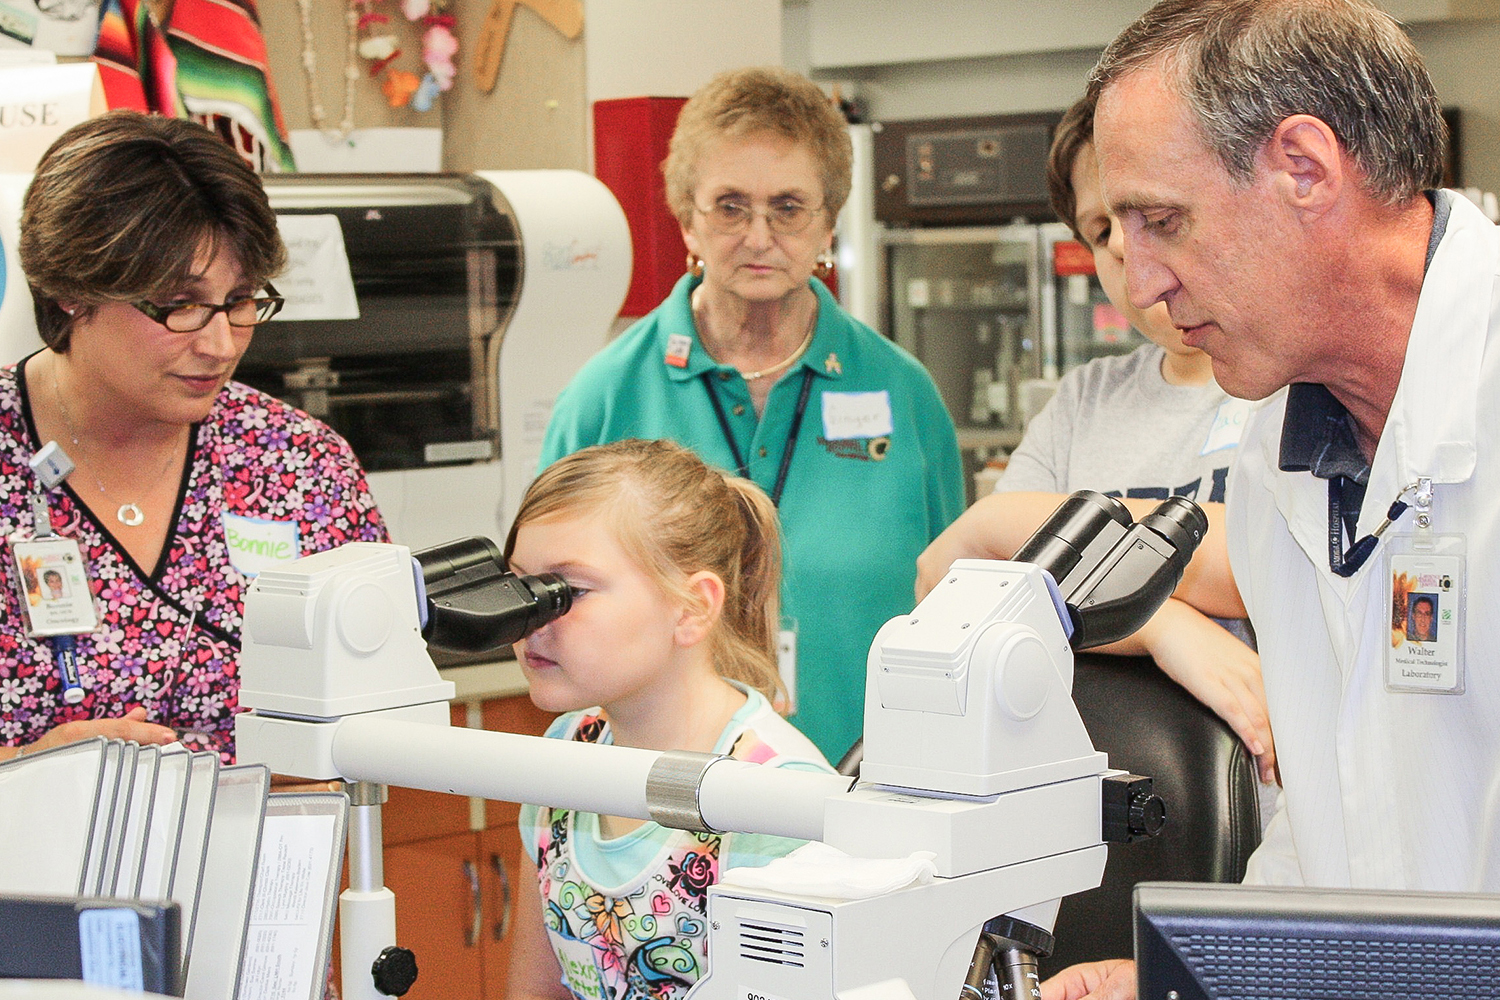 """A participant gets """"a close up look at cancer"""" in the program at Lawrence Memorial Hospital Oncology in Lawrence, Kansas. (Peter R. van Dernoot)"""